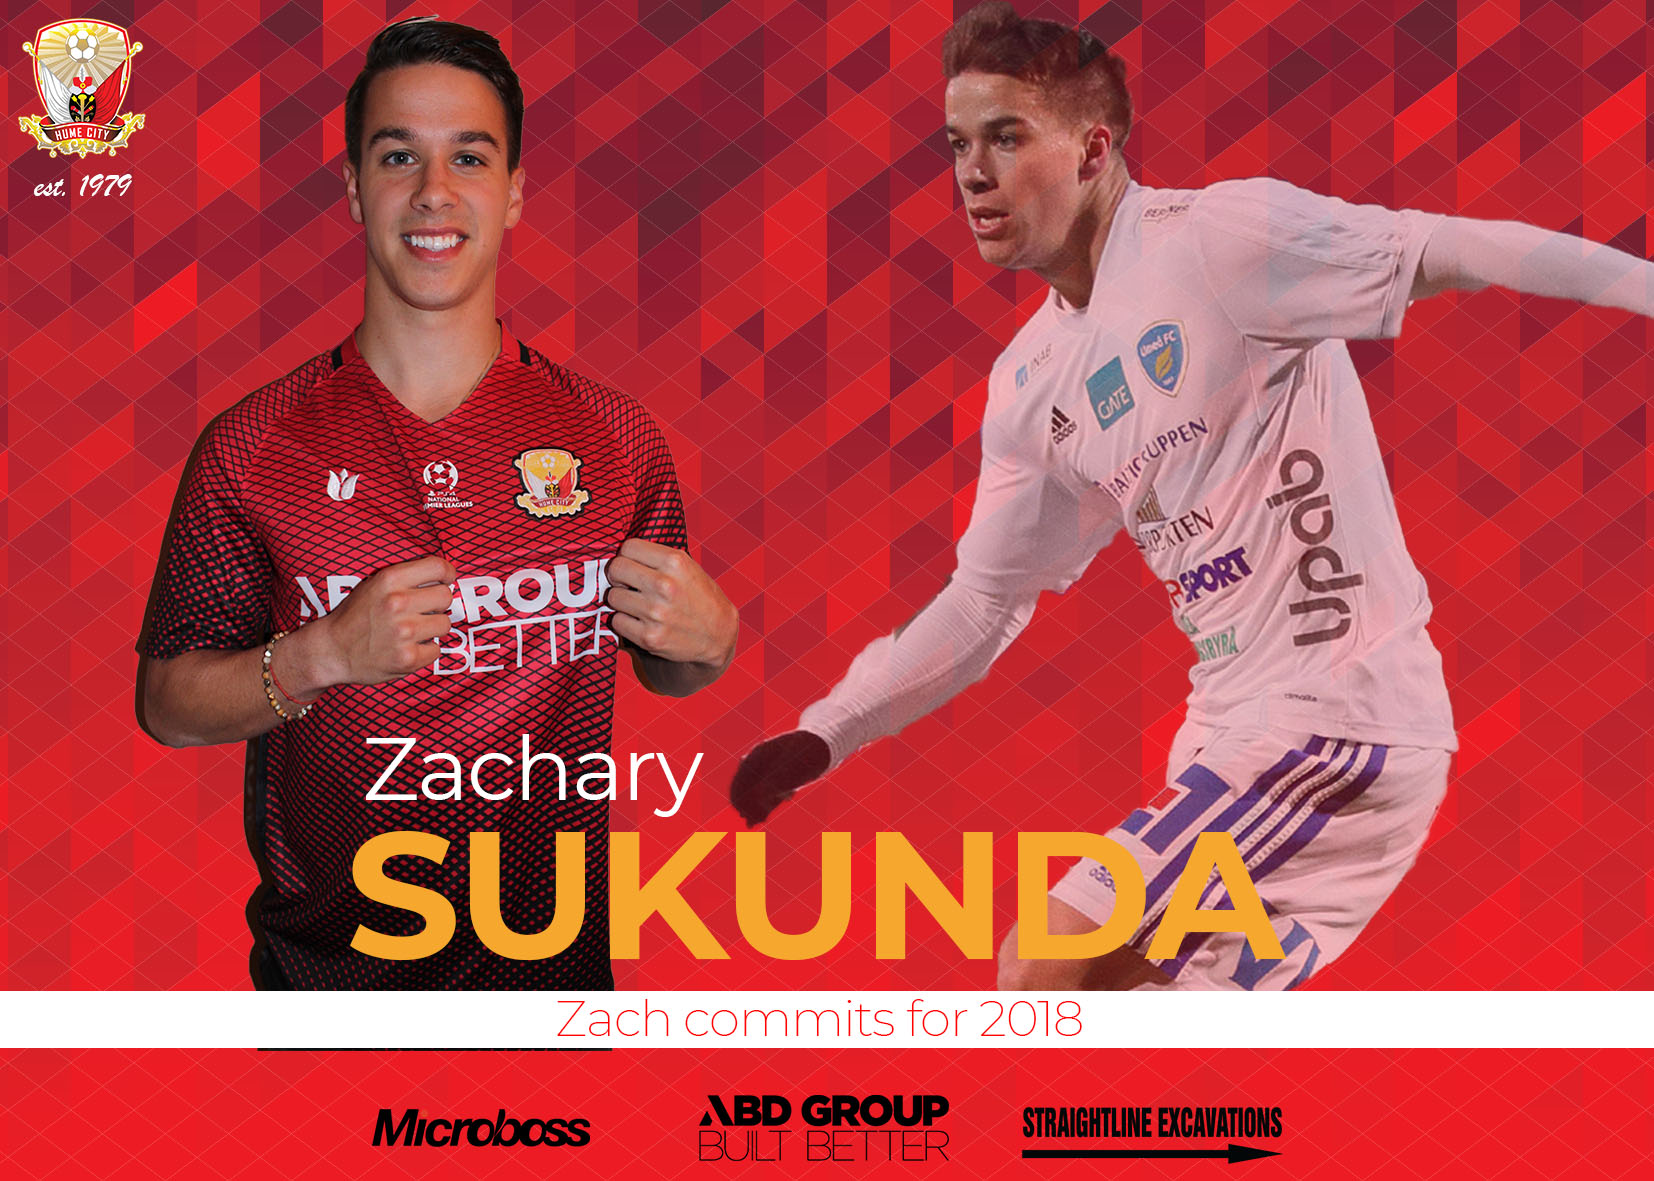 Welcome to Hume Zachary Sukunda